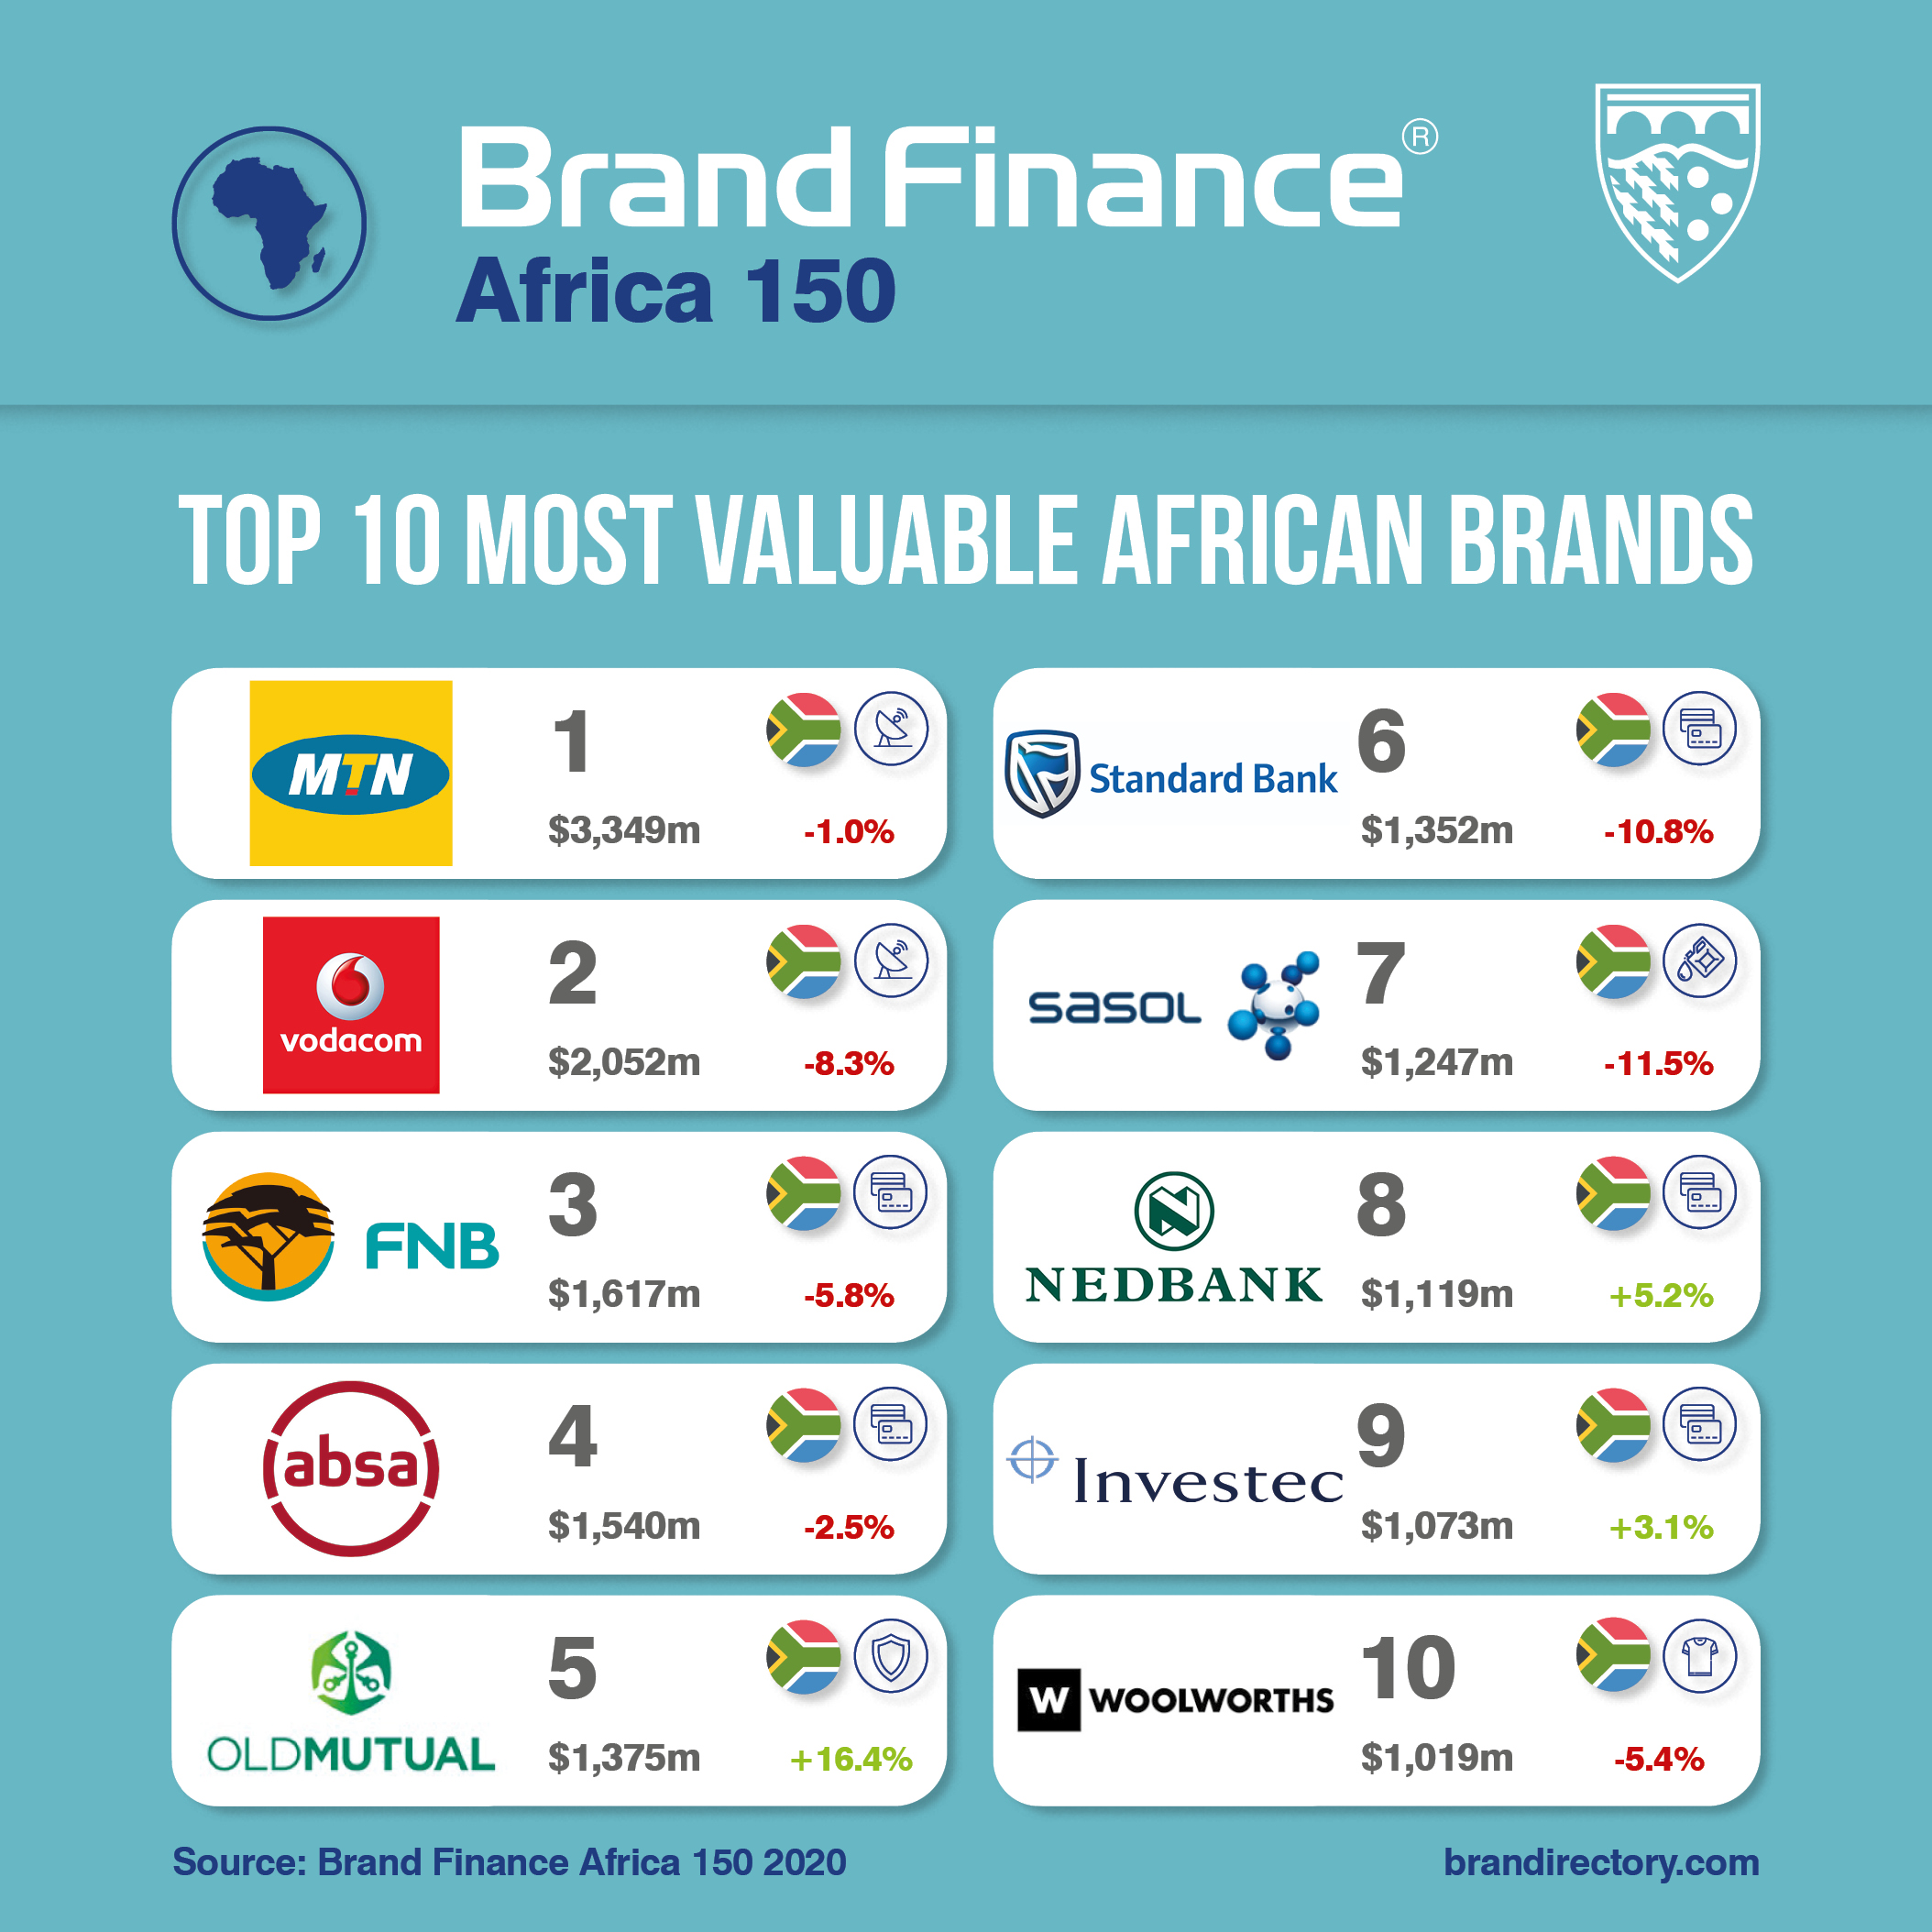 Top African Brands Could Lose up to US$60 Billion from COVID-19 brandspurng